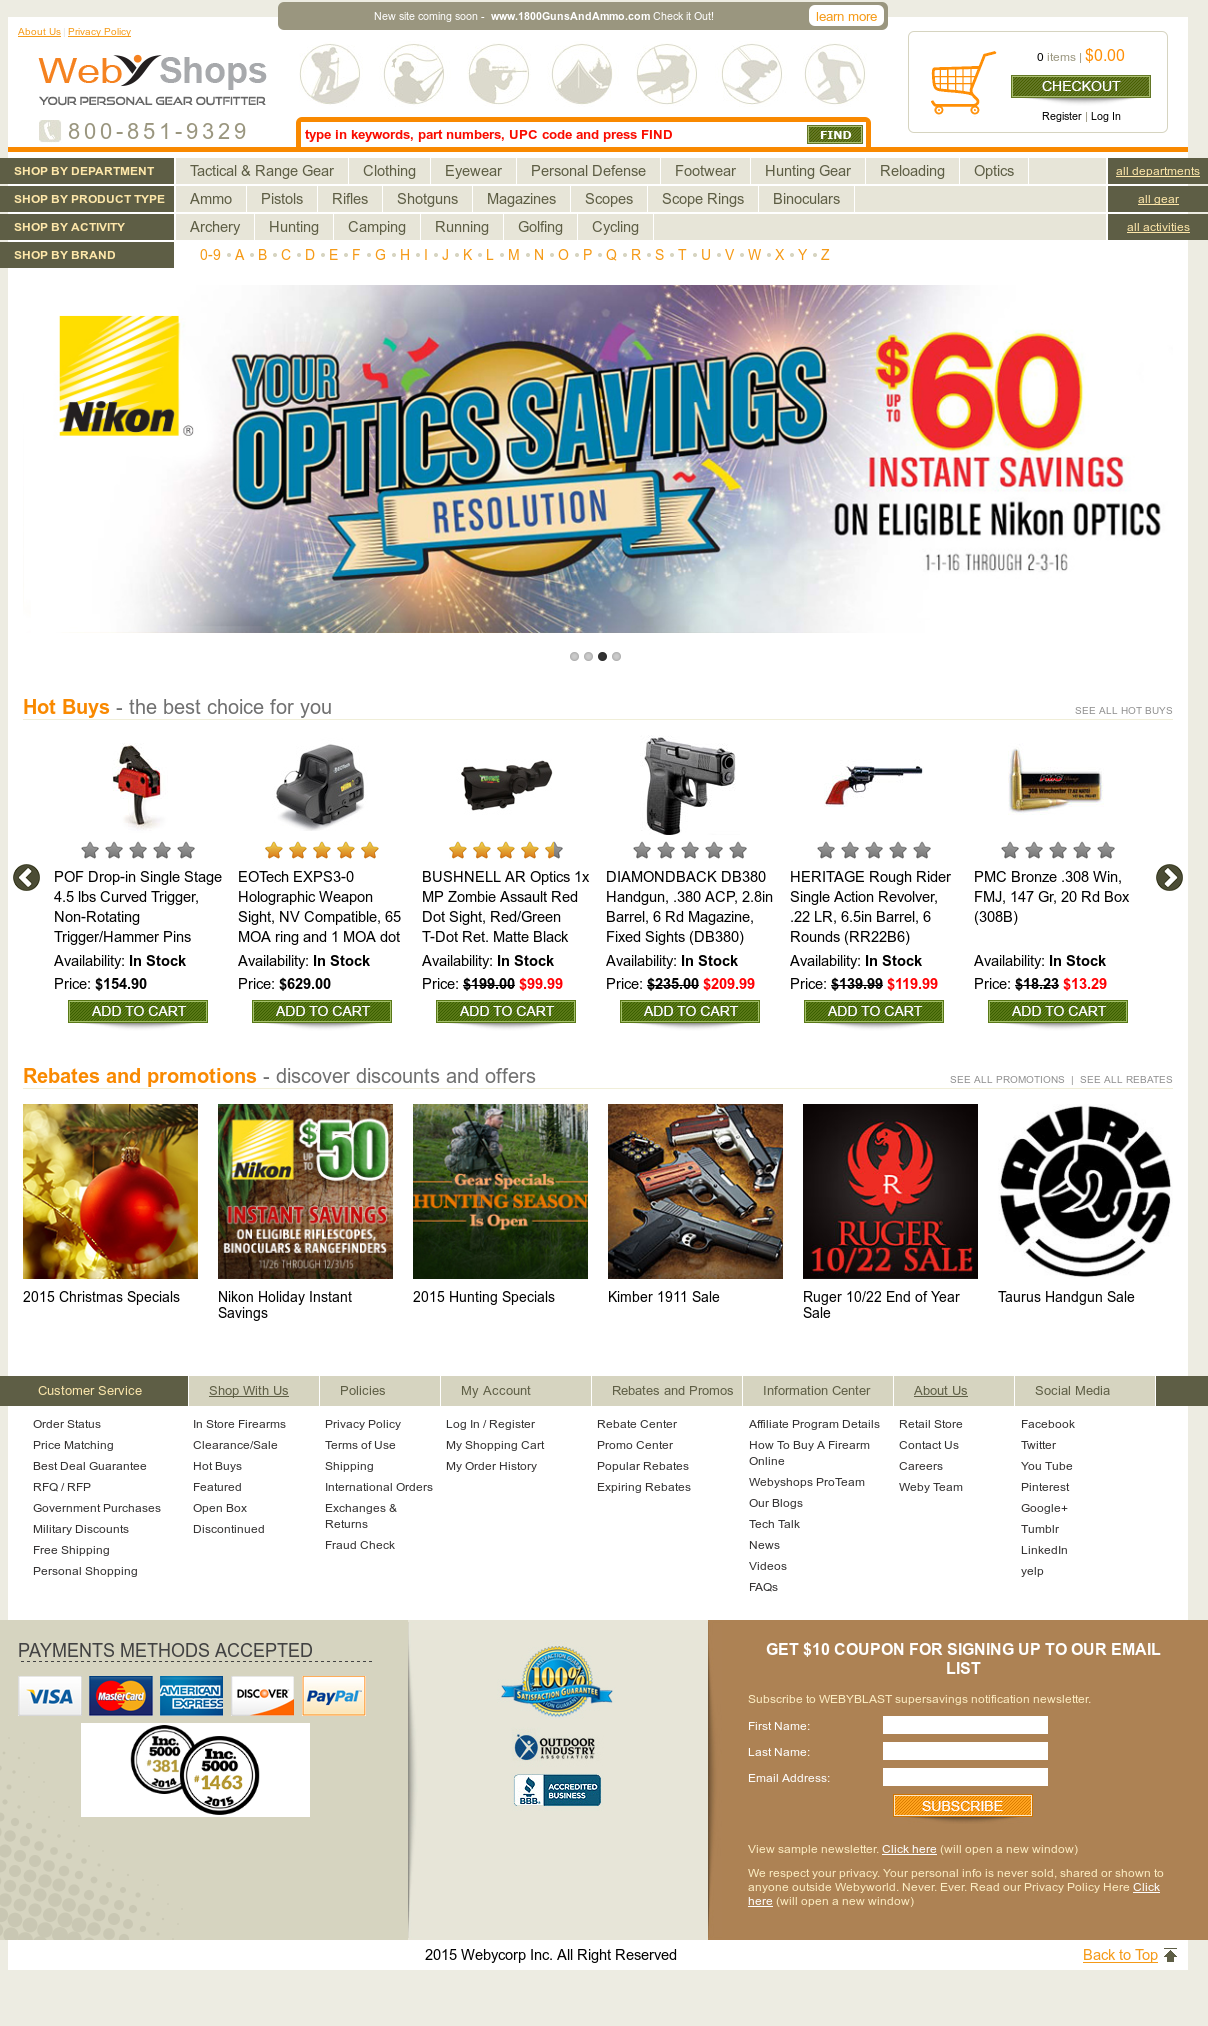 Webyshops Competitors, Revenue and Employees - Owler Company Profile